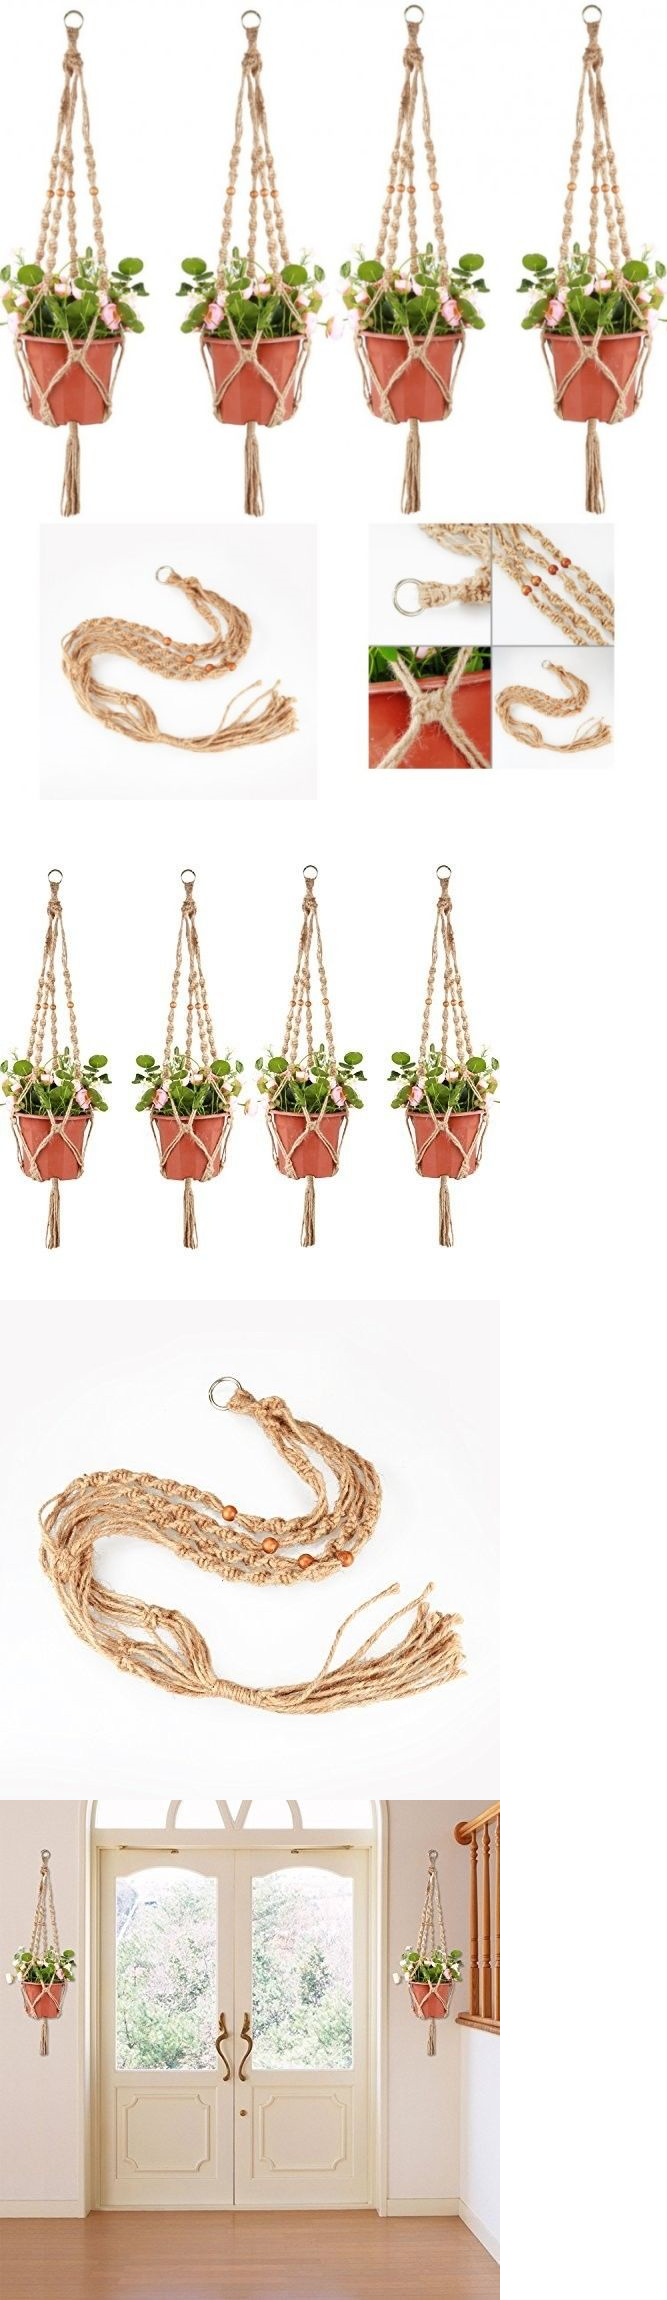 Elegant Chains for Hanging Plants